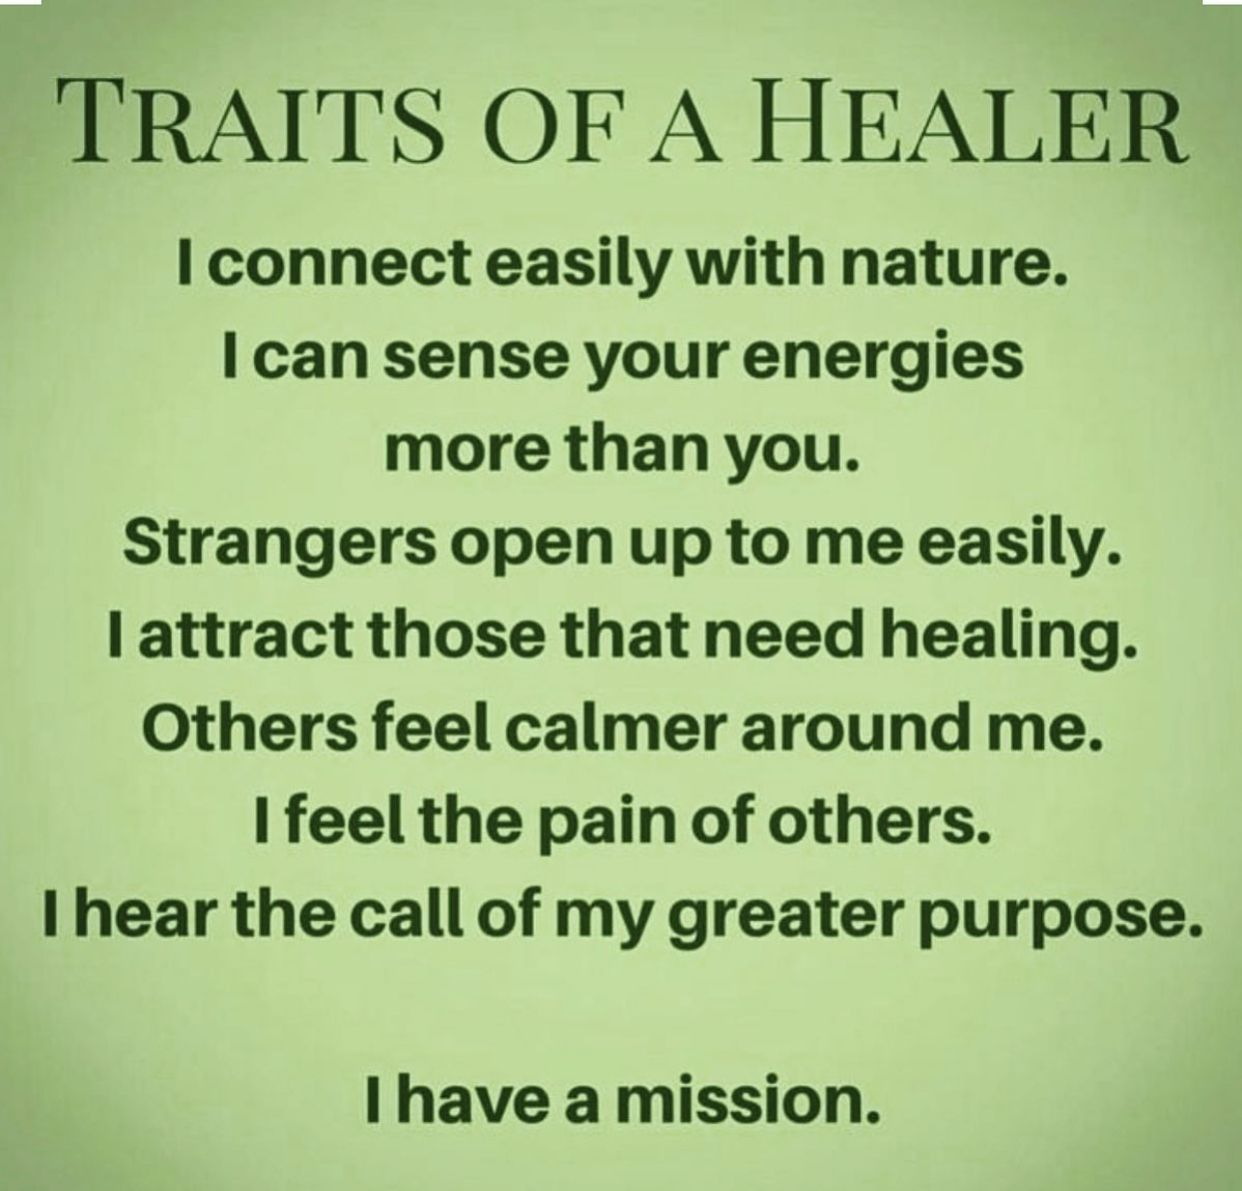 Pin By Shanita Campbell On Quotes And More In 2020 Healer Quotes Healing Quotes Energy Healing